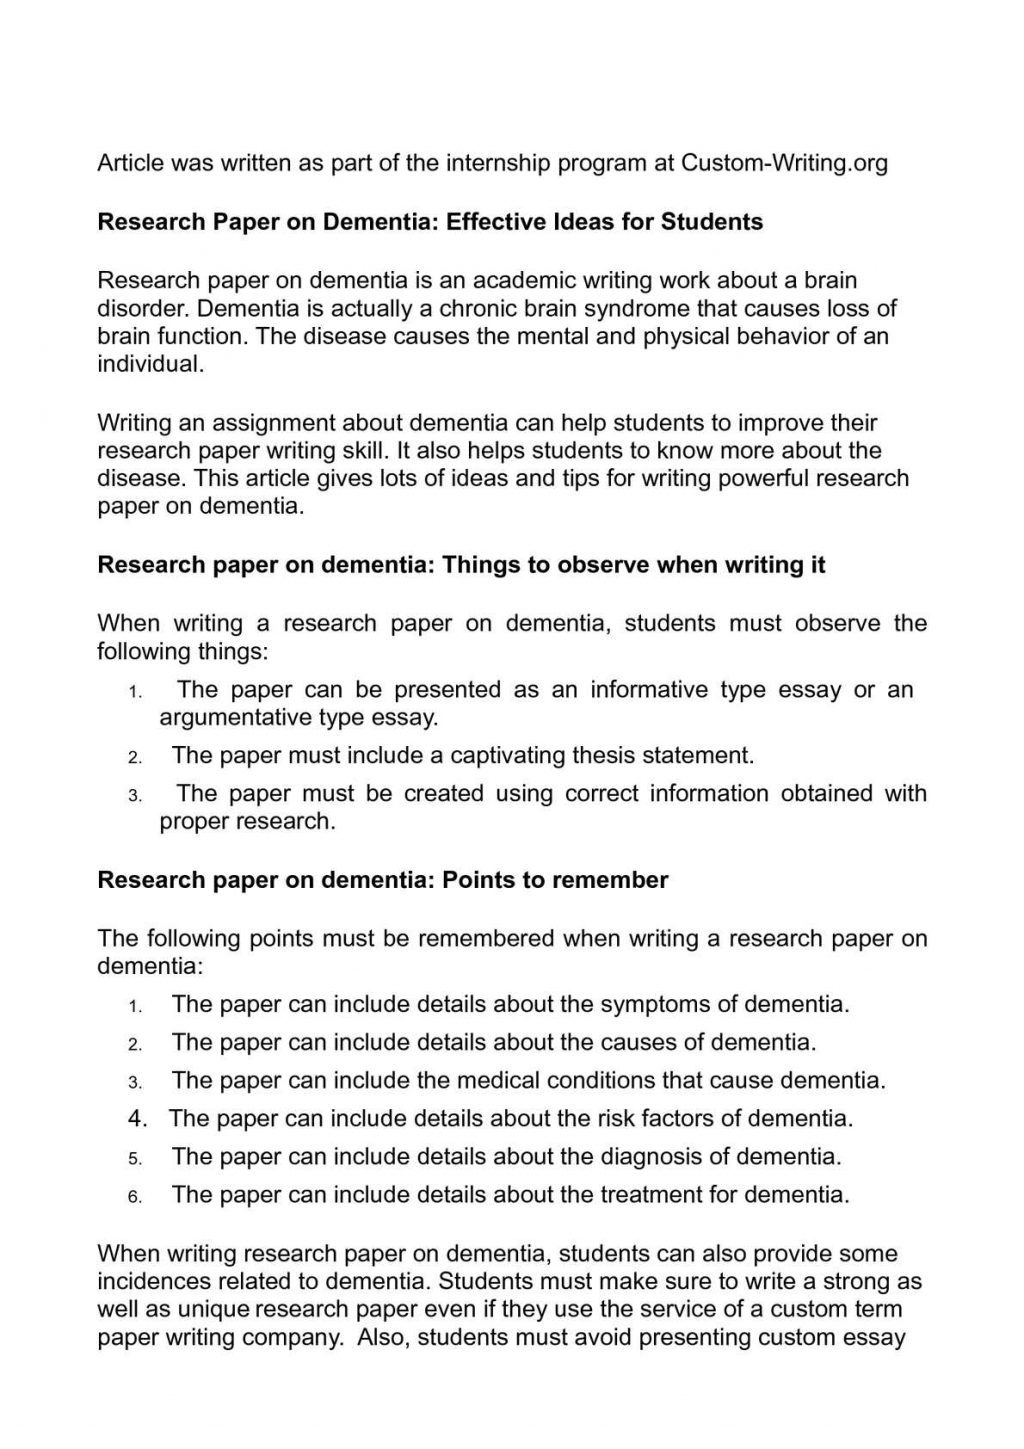 021 Research Paper Interesting Ideas For 20calama20c220a9o